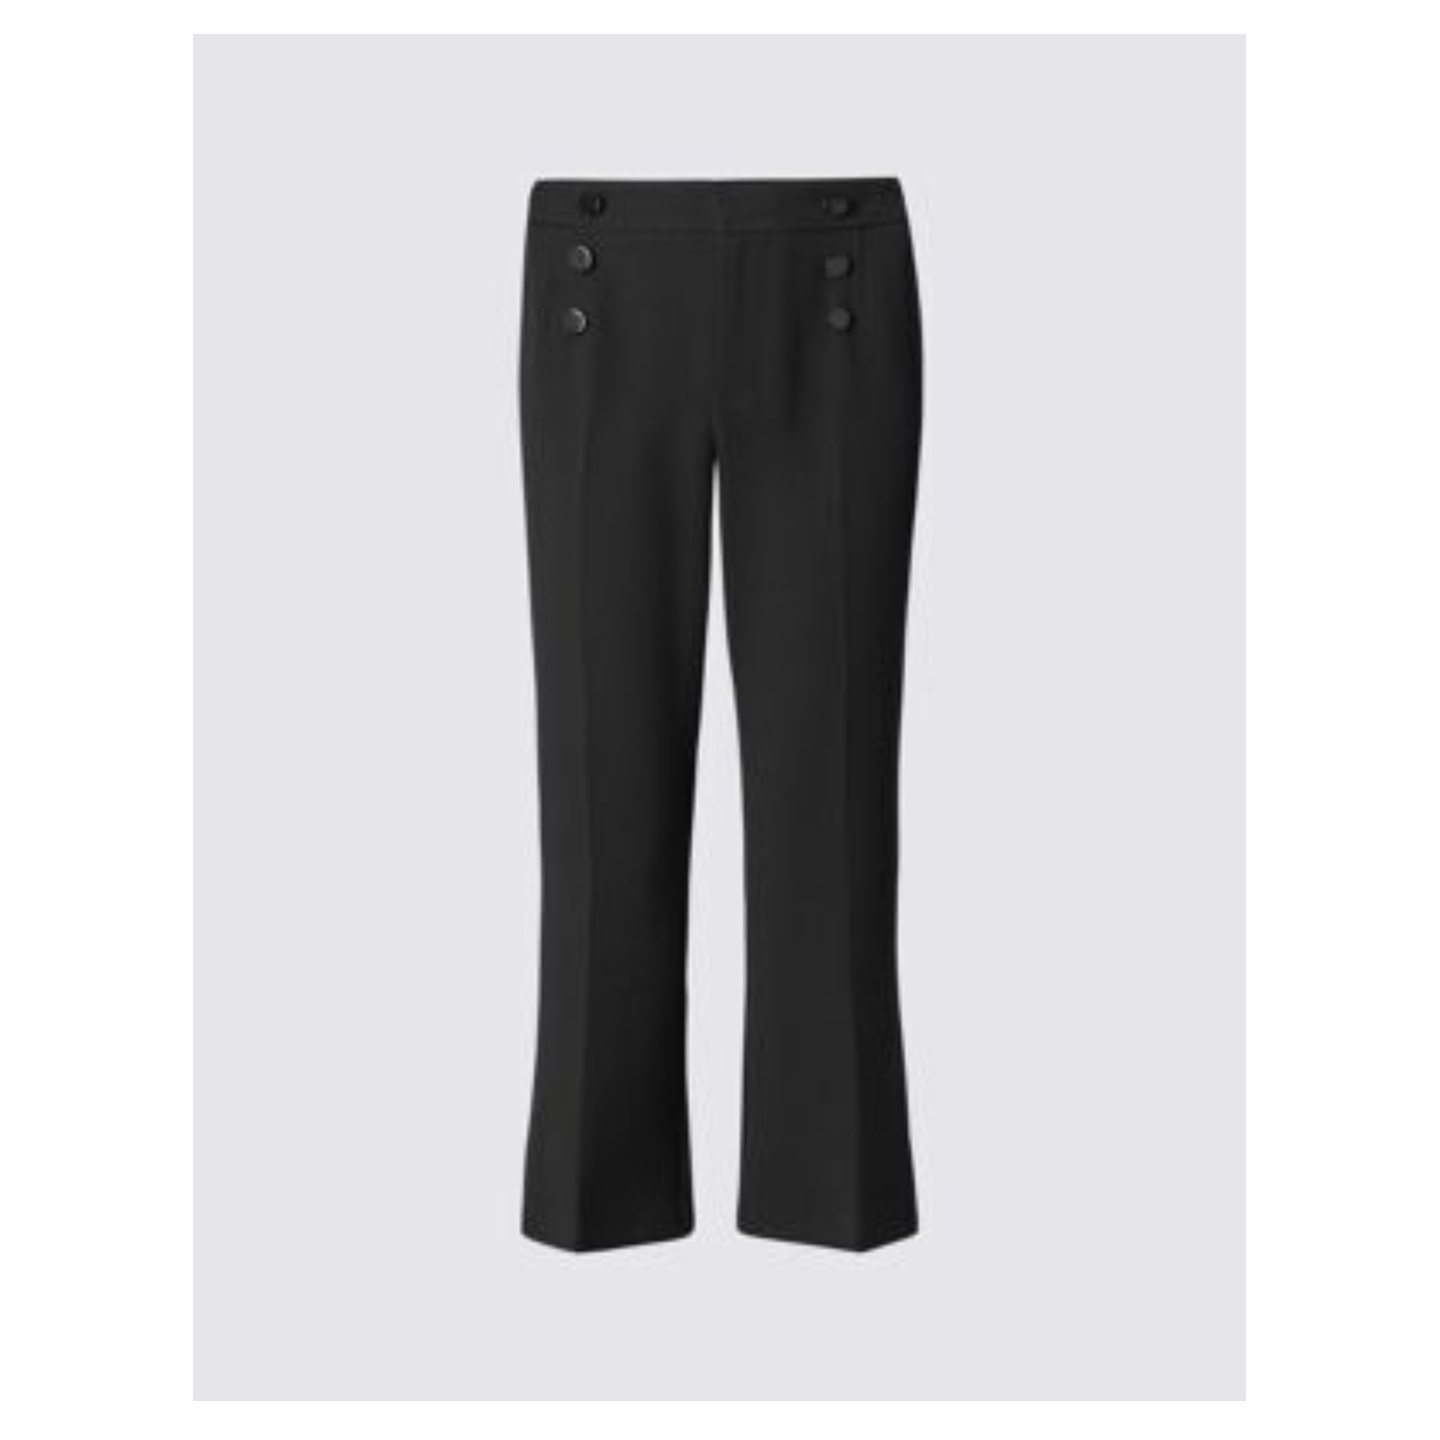 M&S Womens Black Stitched Trouser